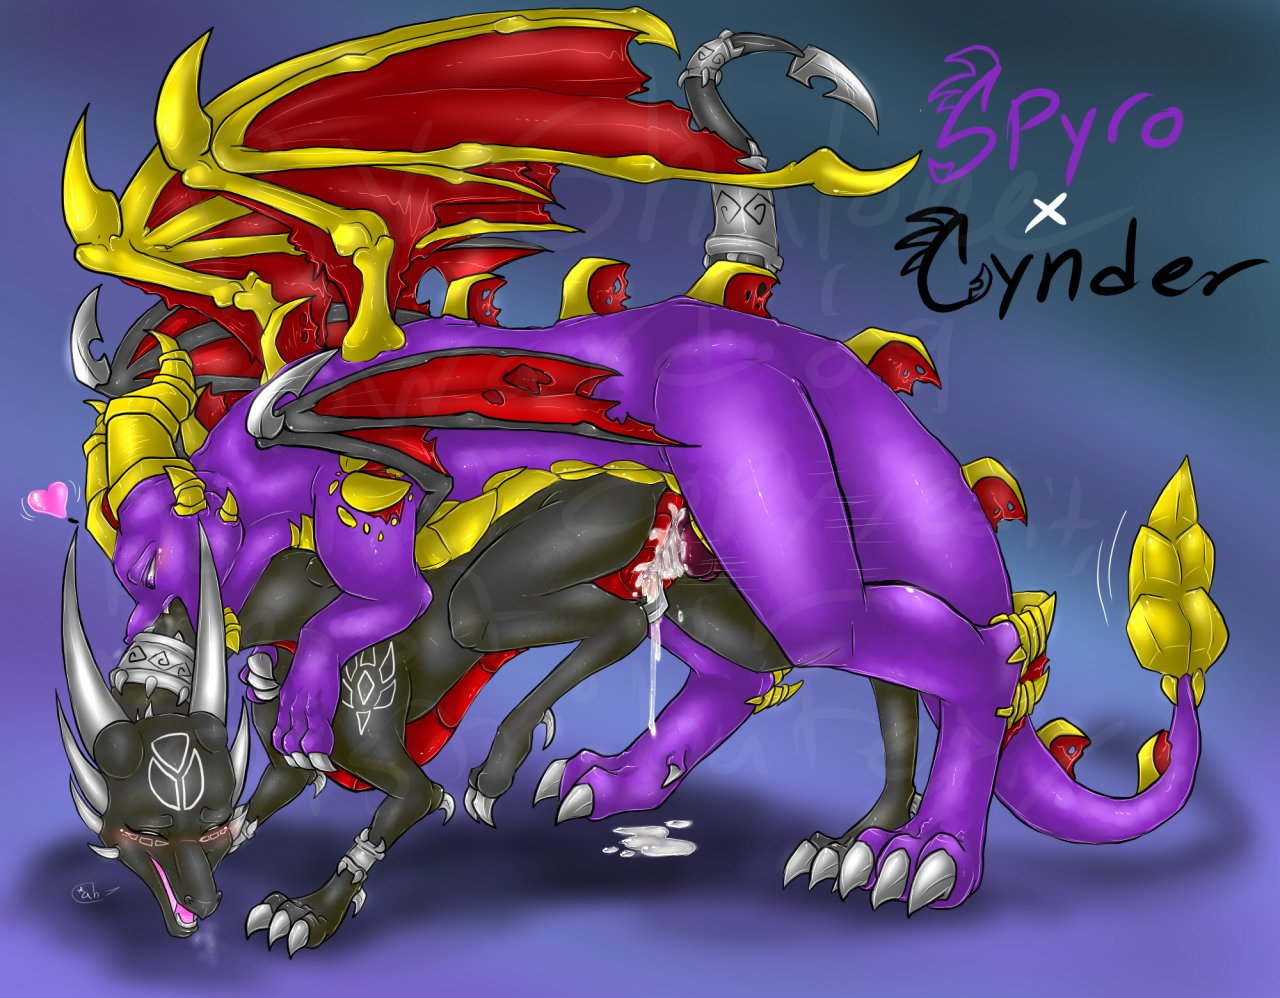 mating fanfiction spyro cynder and Who is the girl in the esurance commercial